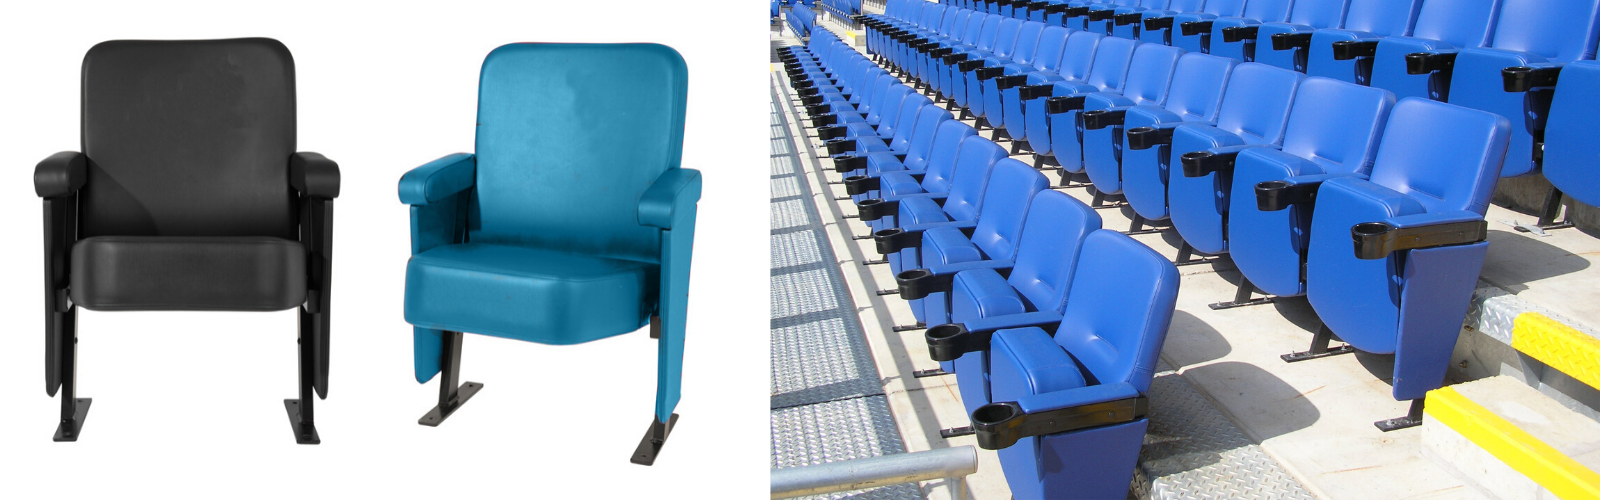 Evertaut's VIP premium stadium seating shown in black and turquoise alongside an installation in a stadium upholstered in blue vinyl with cup holders